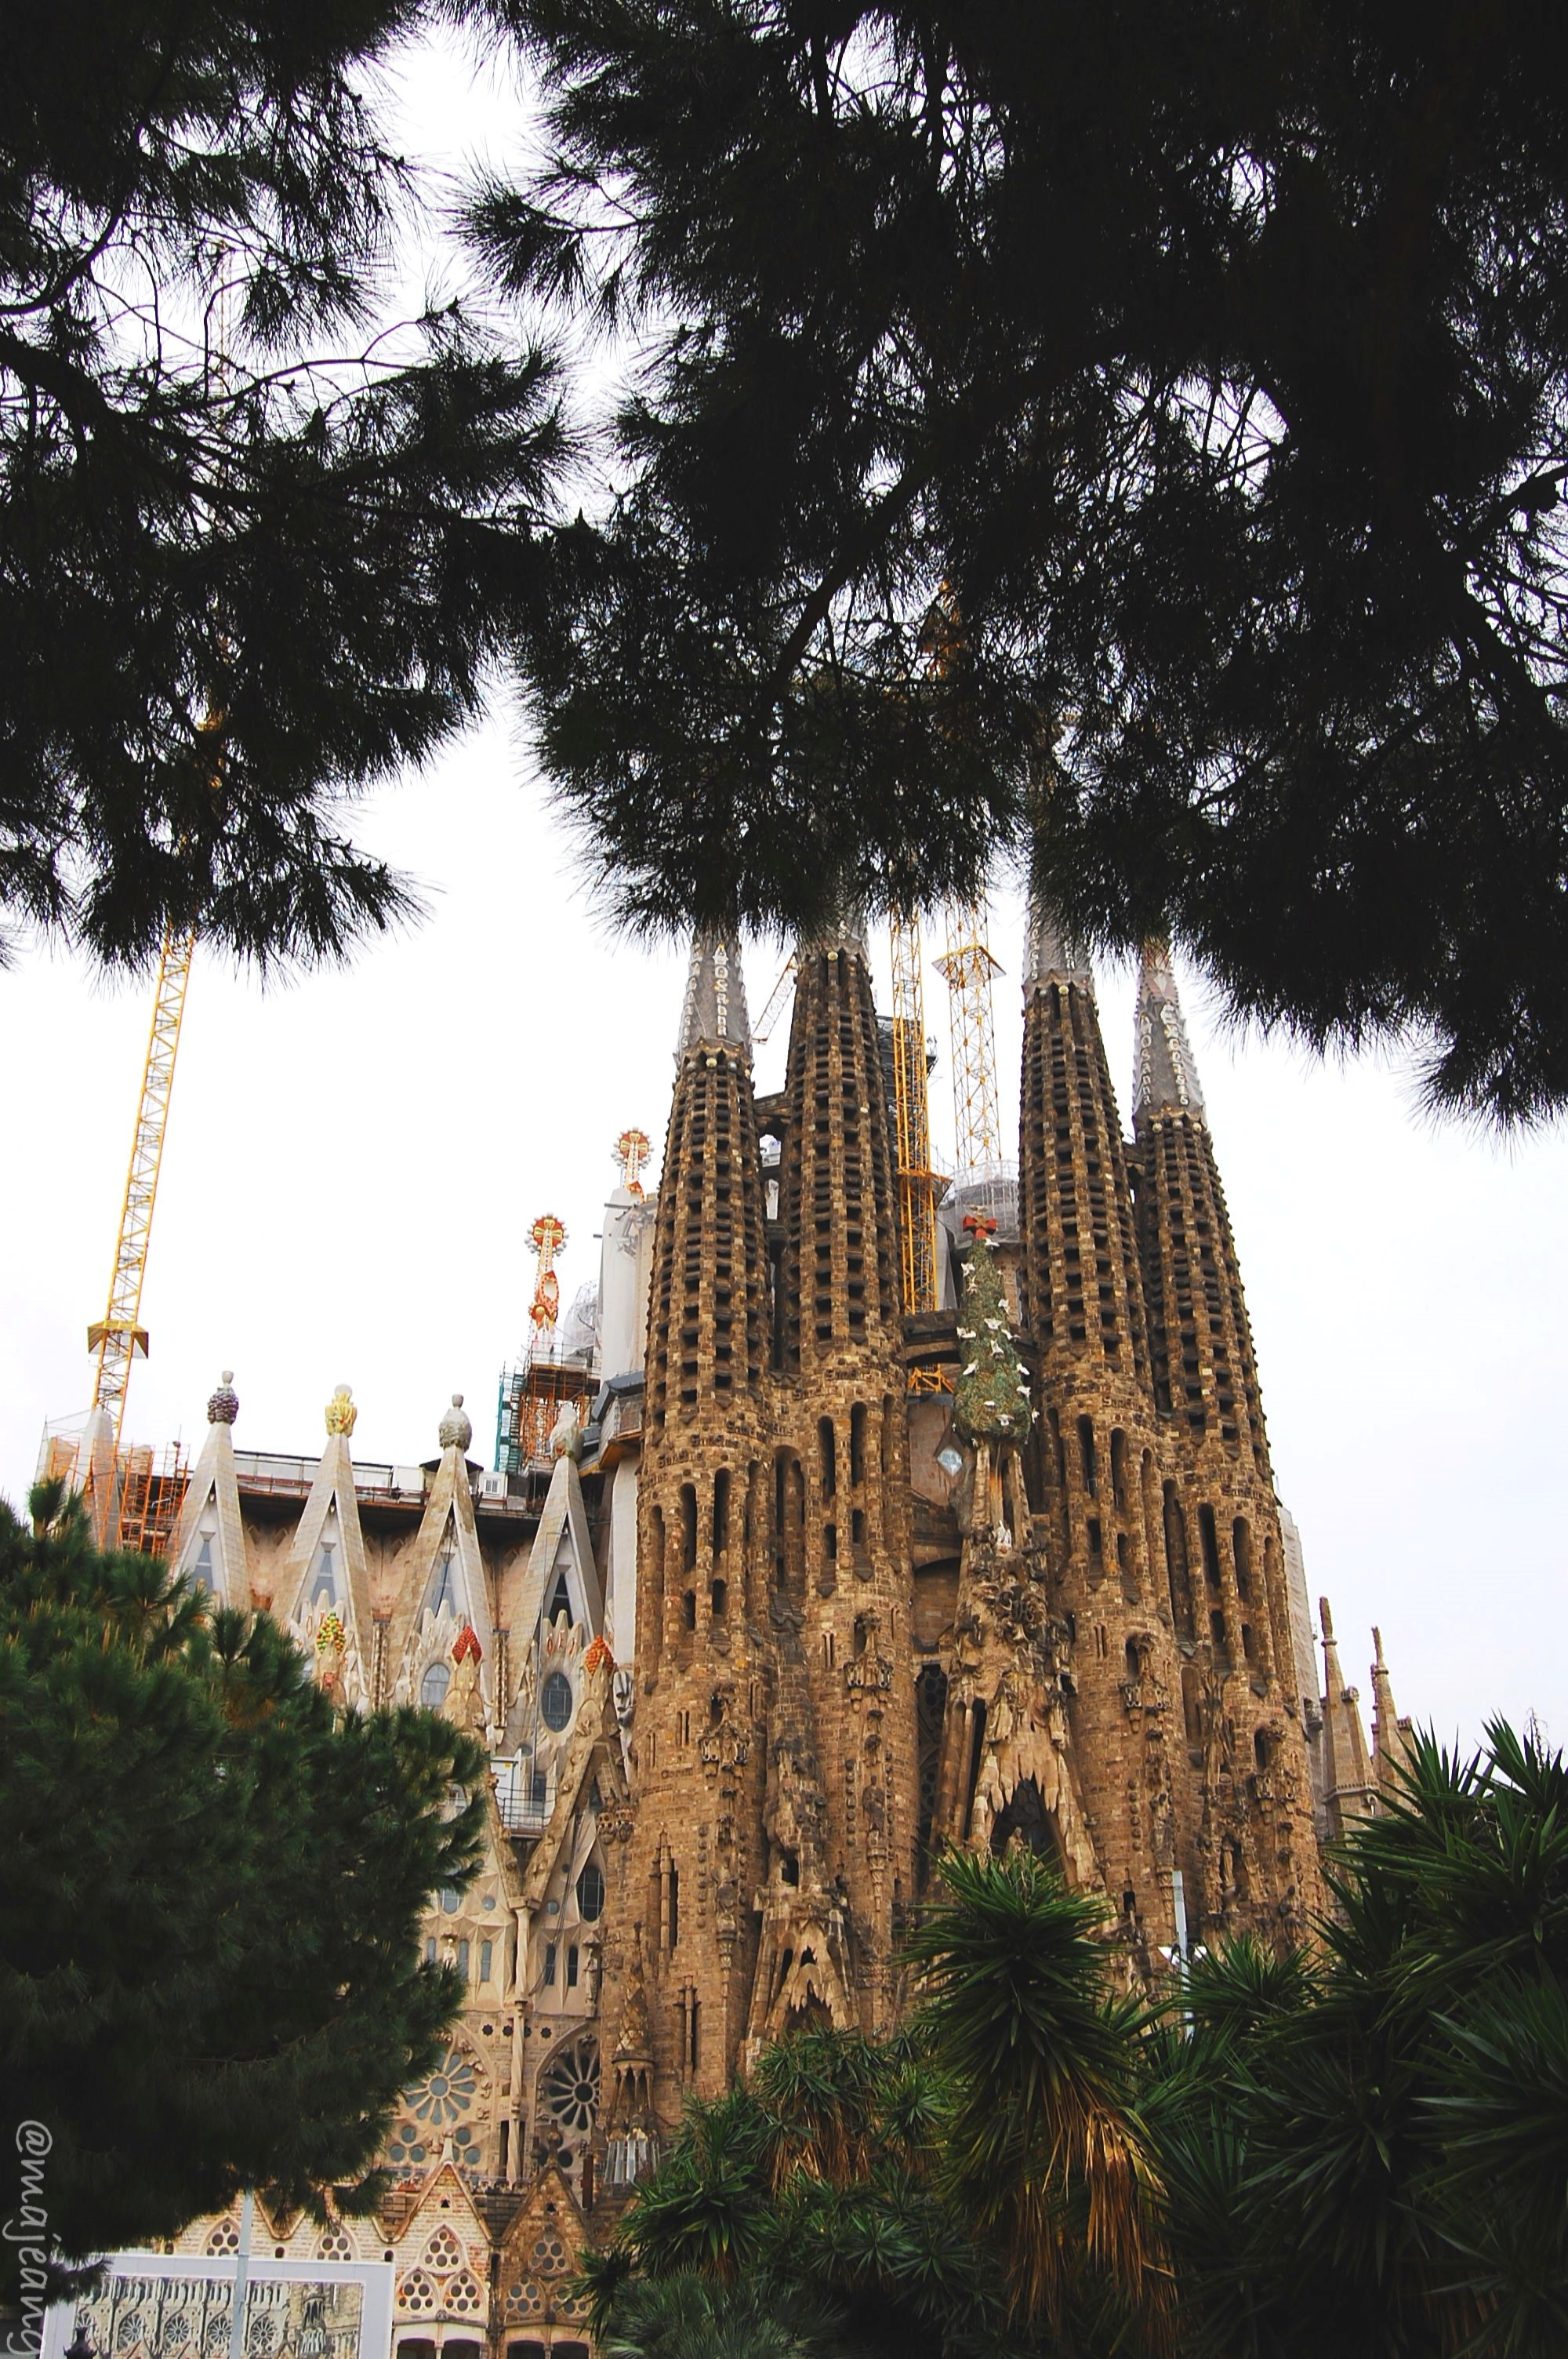 La Sagrada Familia by Gaudi, Barcelona photodiary